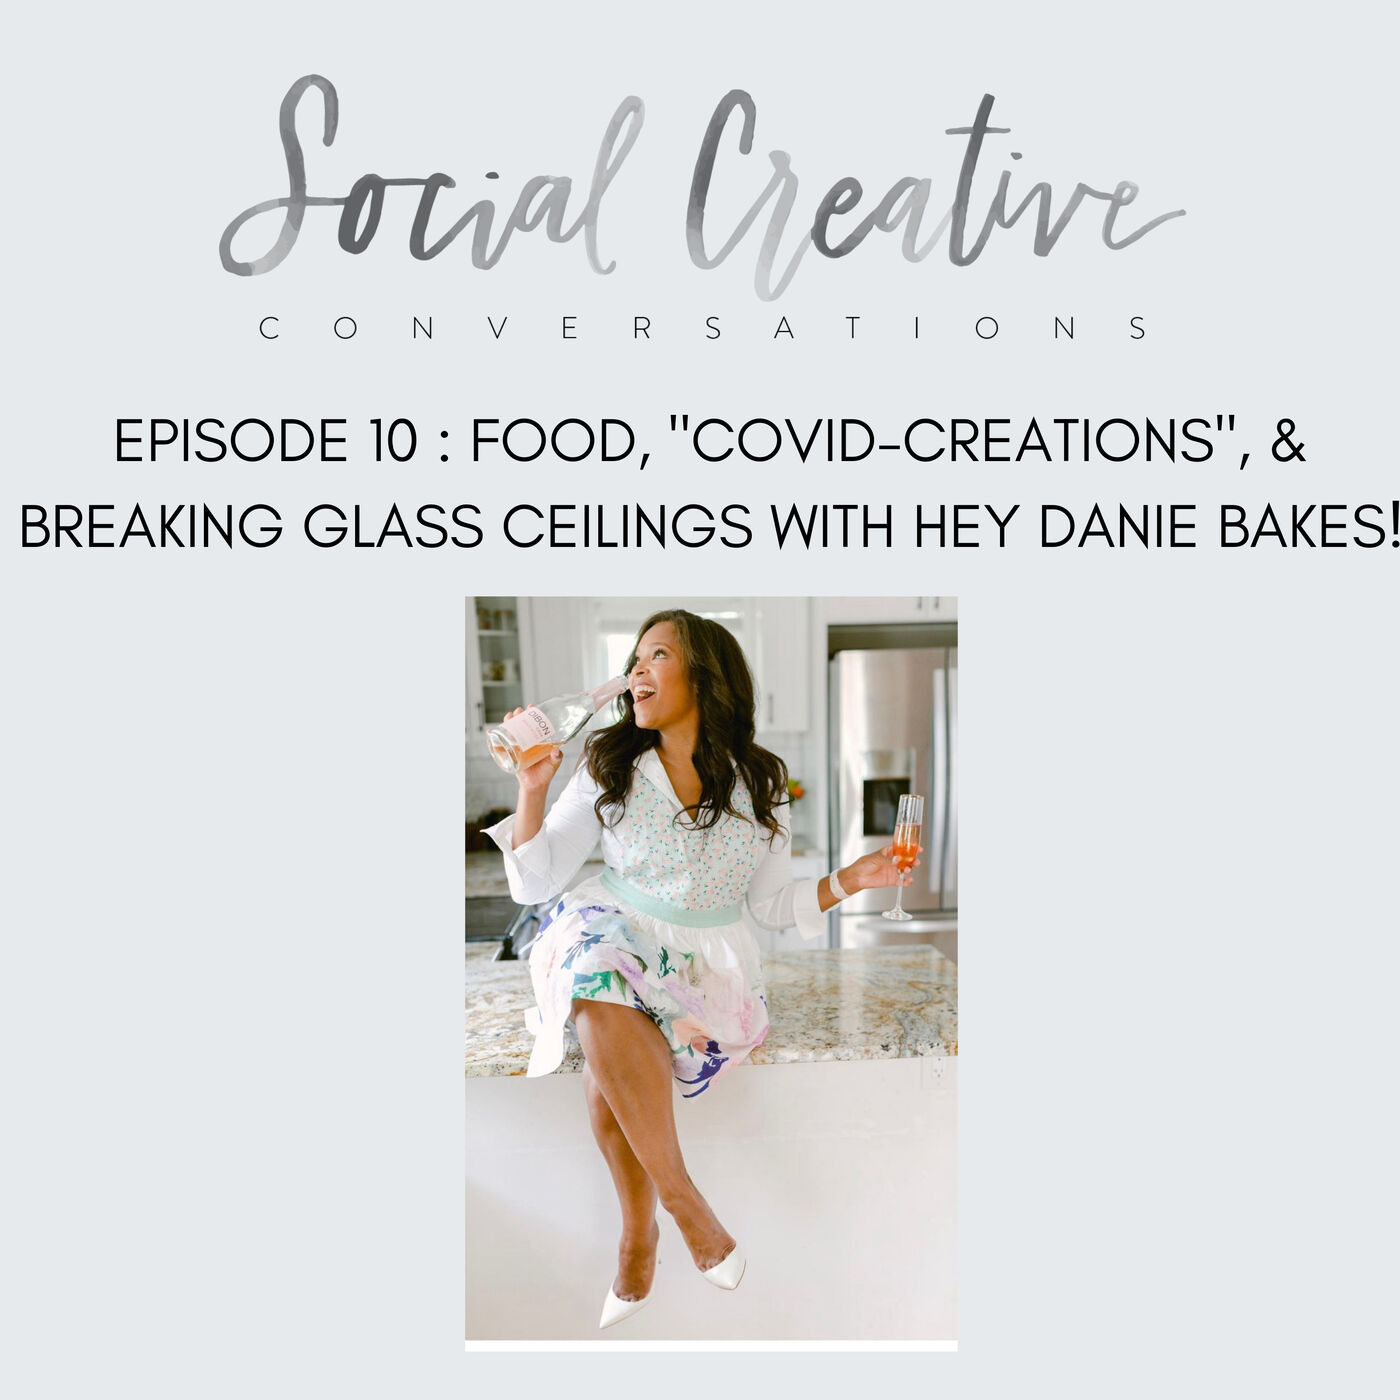 """Food, """"Covid-Creations"""", and Breaking Glass Ceilings with Hey Danie Bakes!"""